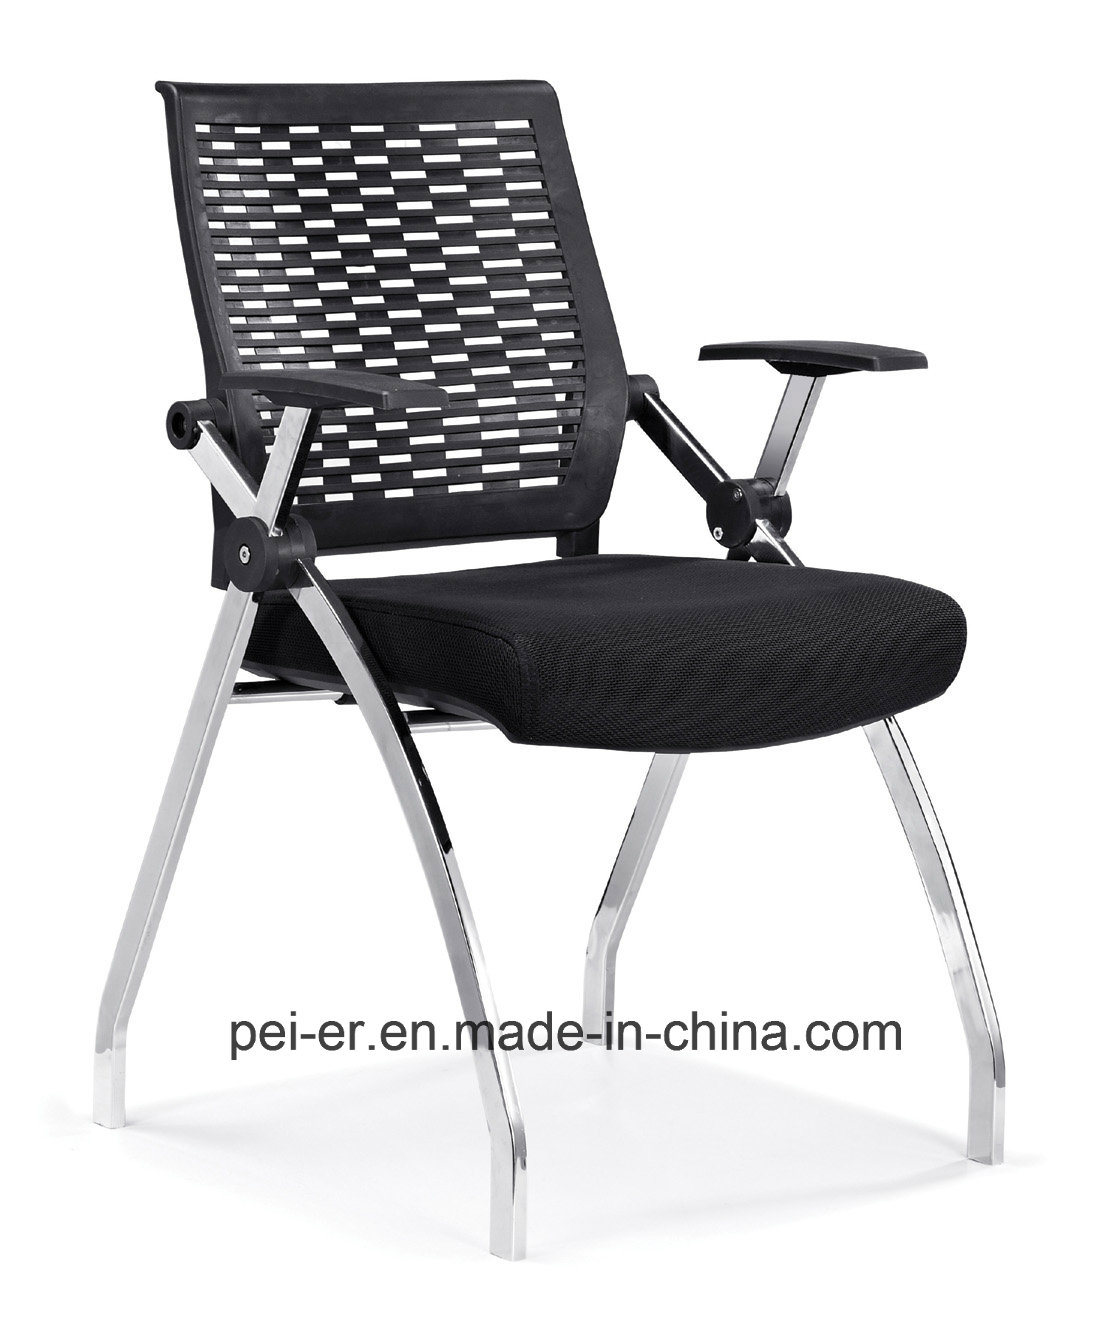 folding chair nylon crate and barrel brown leather recliner club china modern furniture adjustable arm h633 training